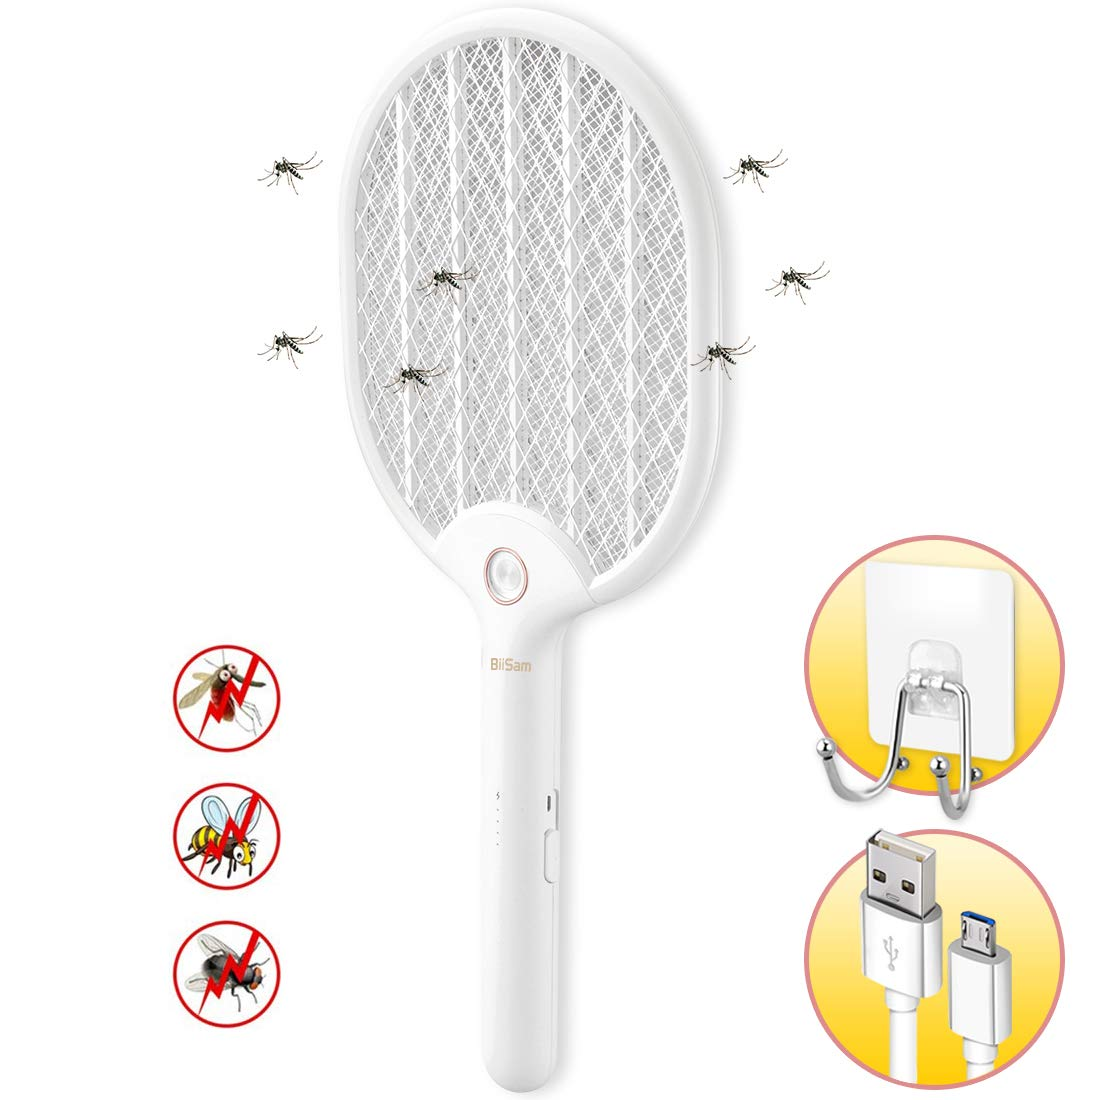 Electric Fly Swatter Racket, USB Charging Mosquito Flies Swatter Fly Zapper with Adhesive Wall Holder for Camping BBQ Indoor and Outdoor by lunaoo